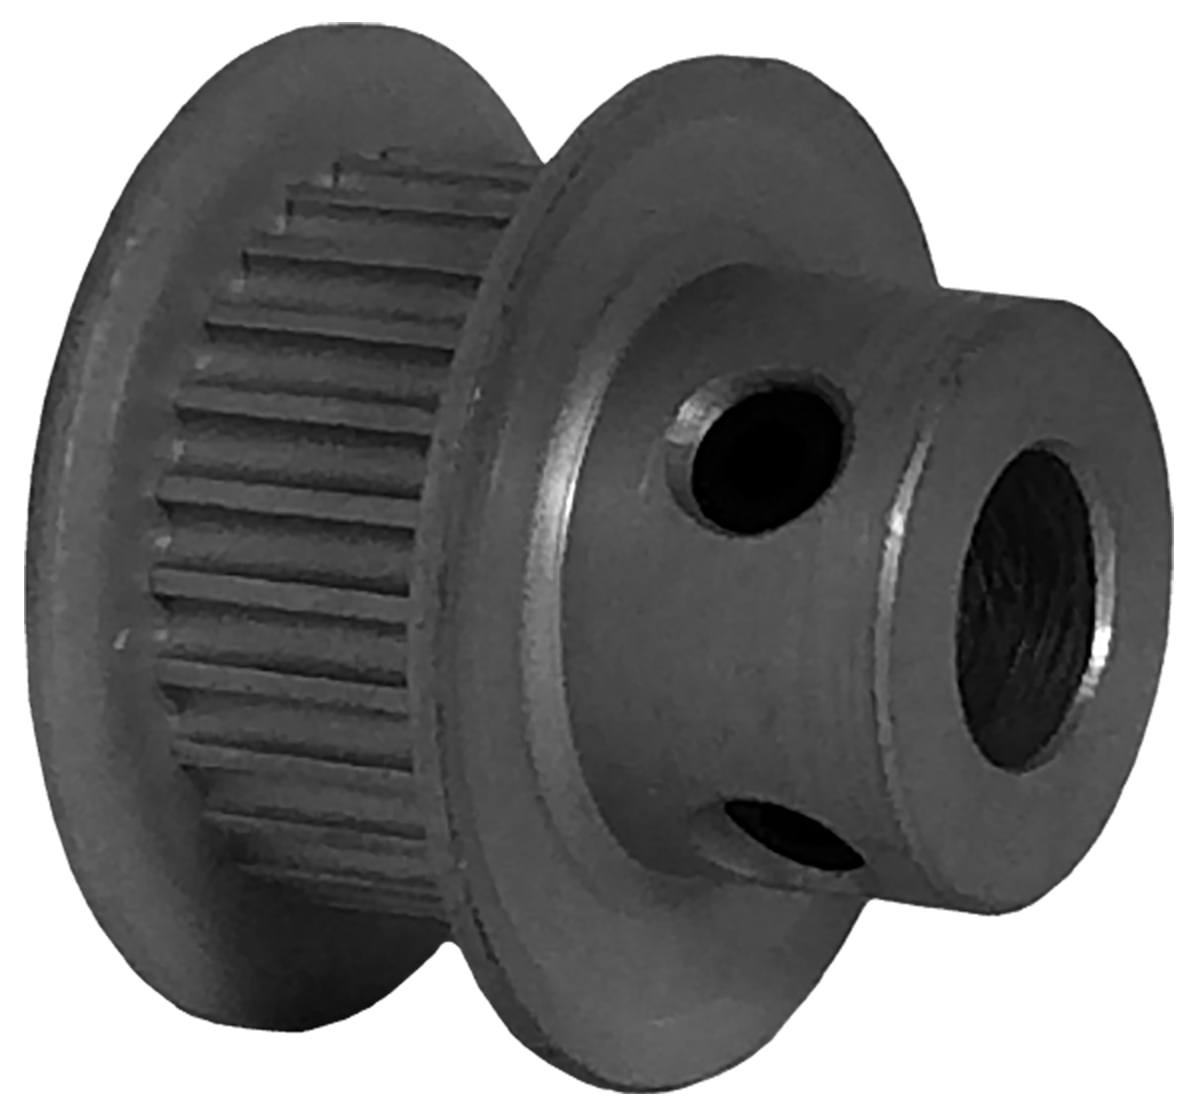 26-2P06-6FA3 - Aluminum Powerhouse® Pulleys